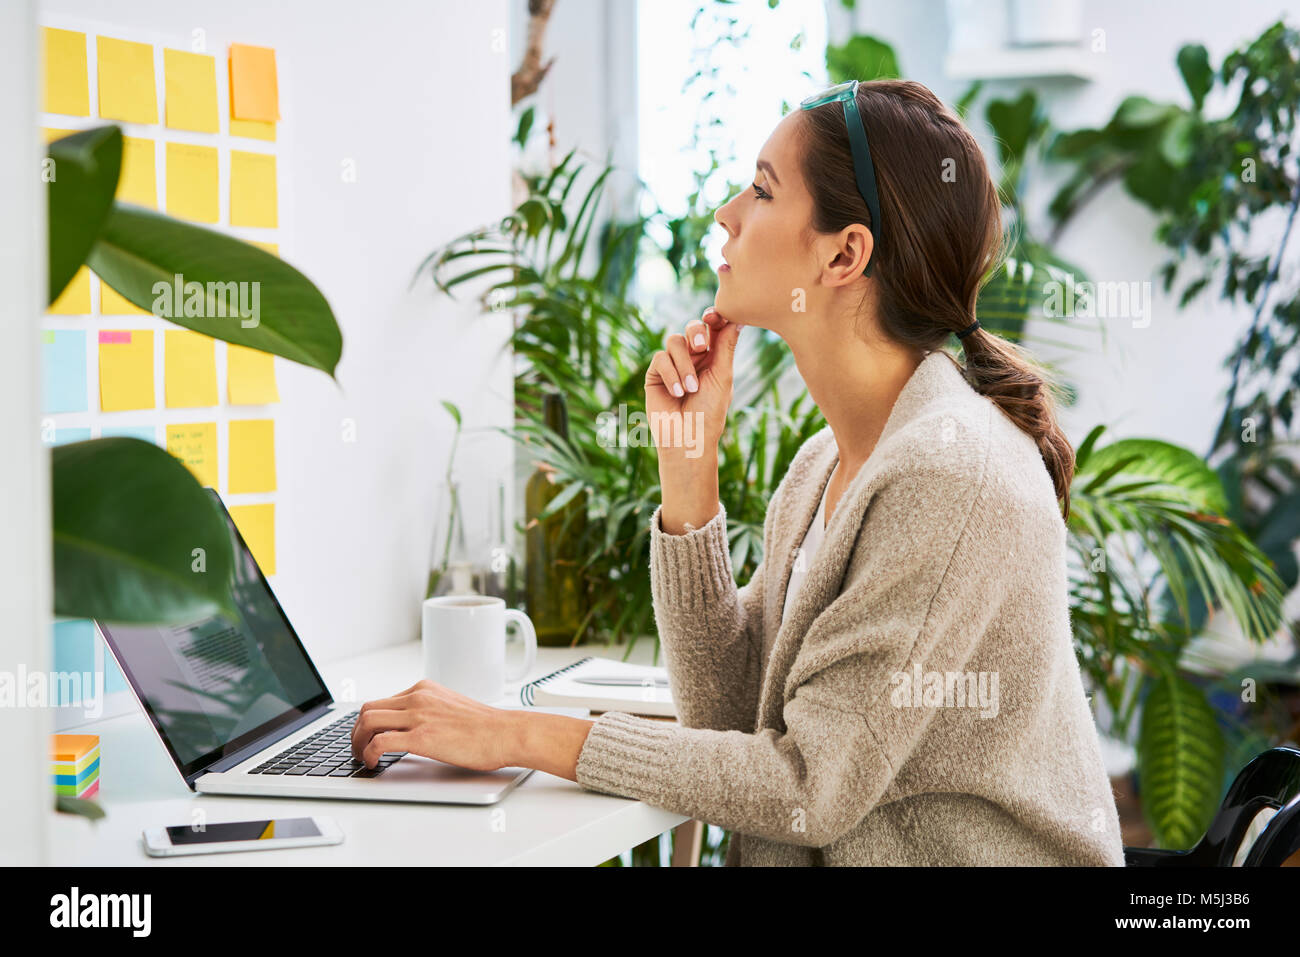 Young woman with laptop on desk looking at adhesive notes on the wall - Stock Image